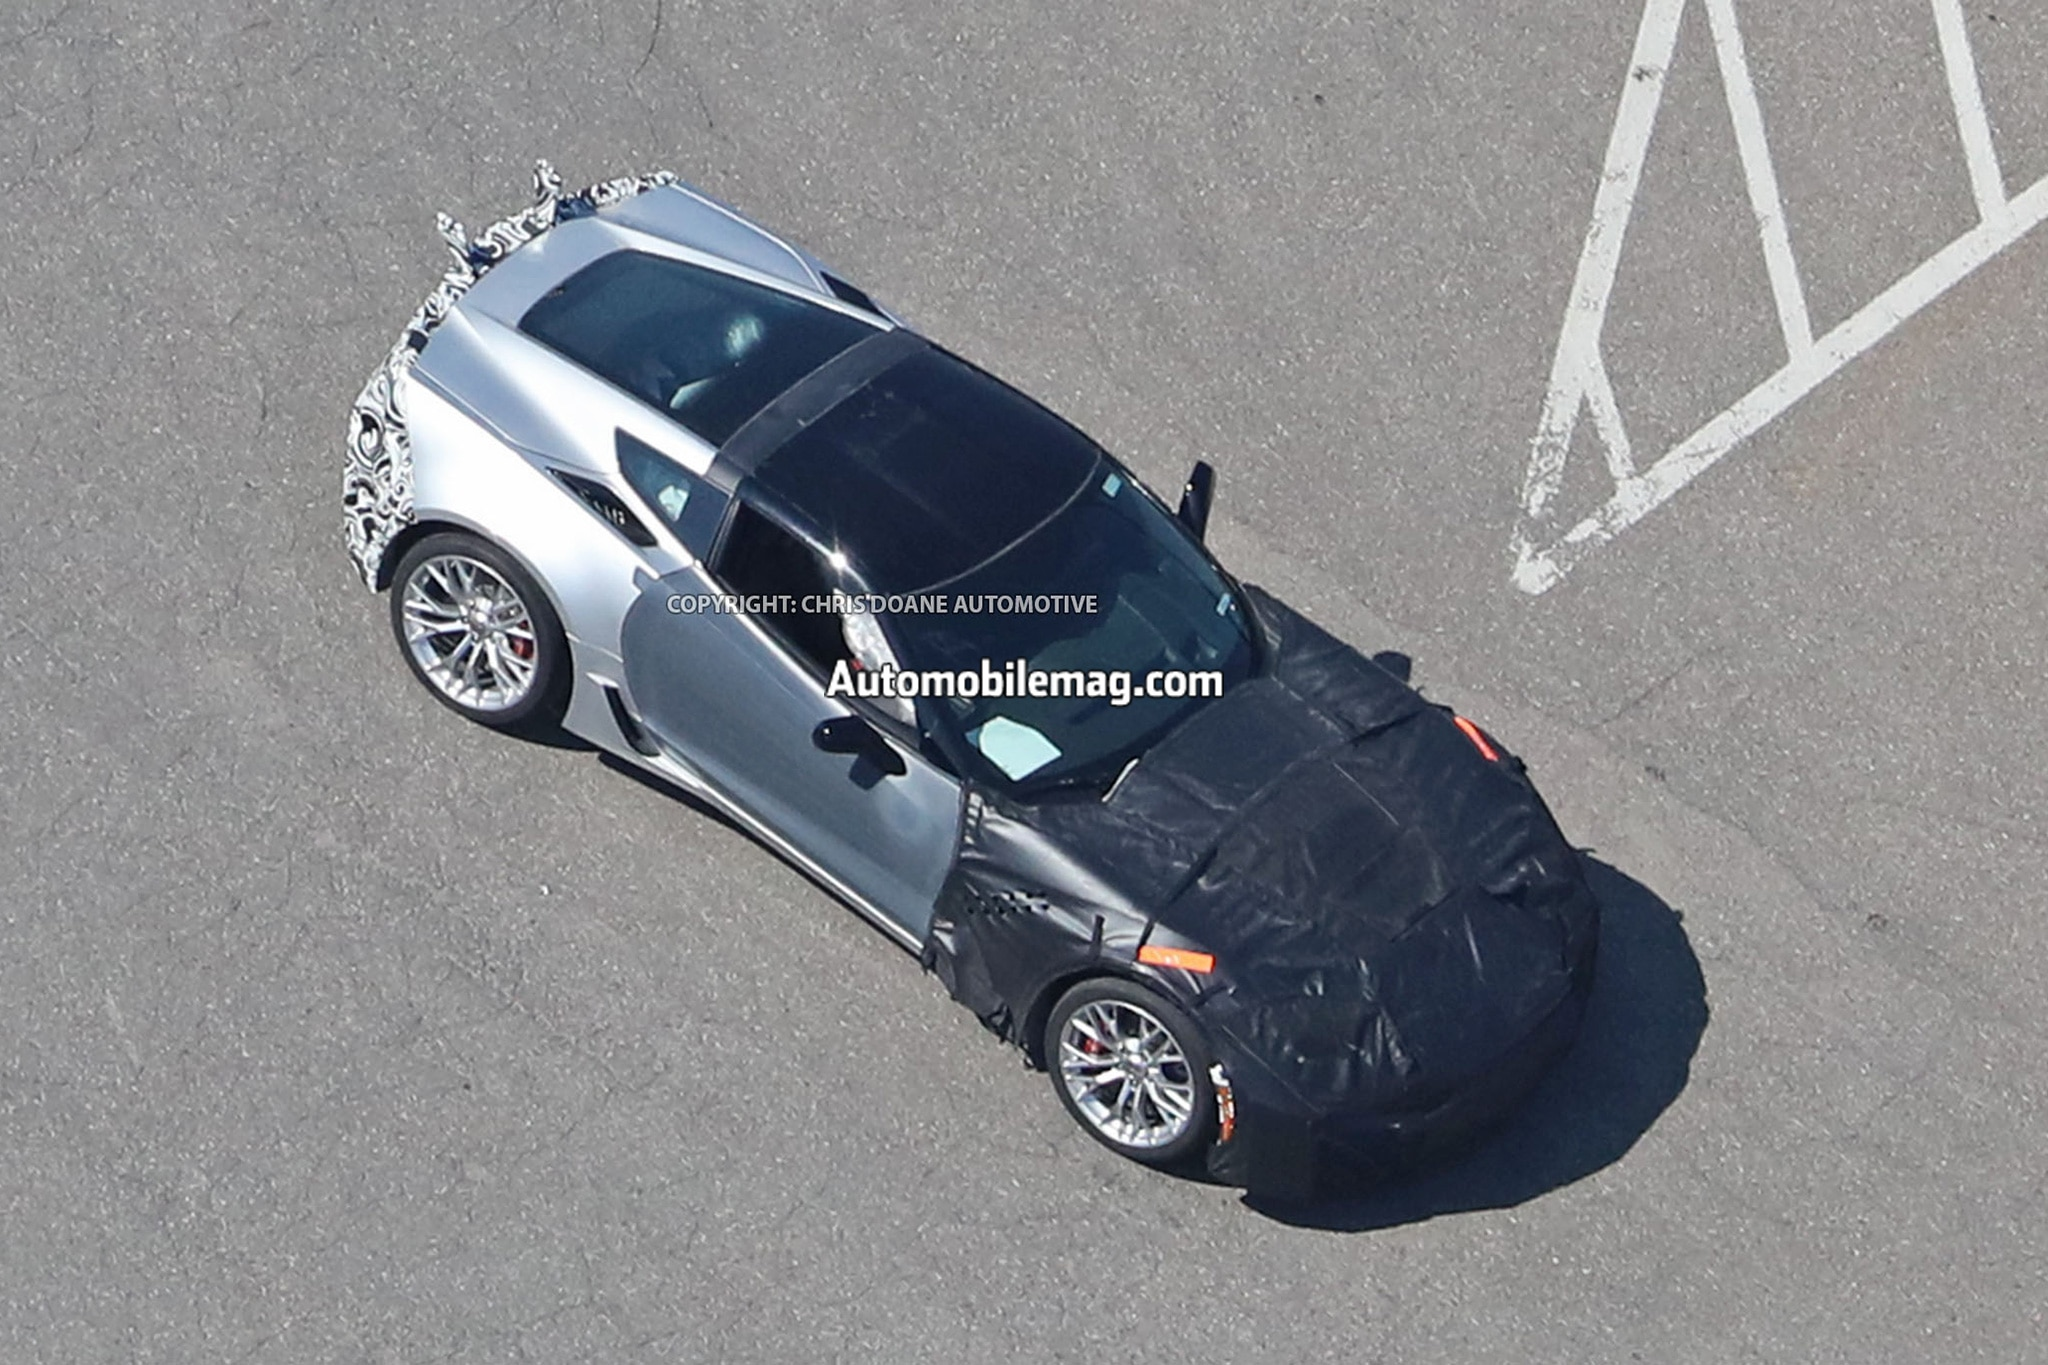 Chevrolet Corvette ZR1 Prototype Spied Photos 43